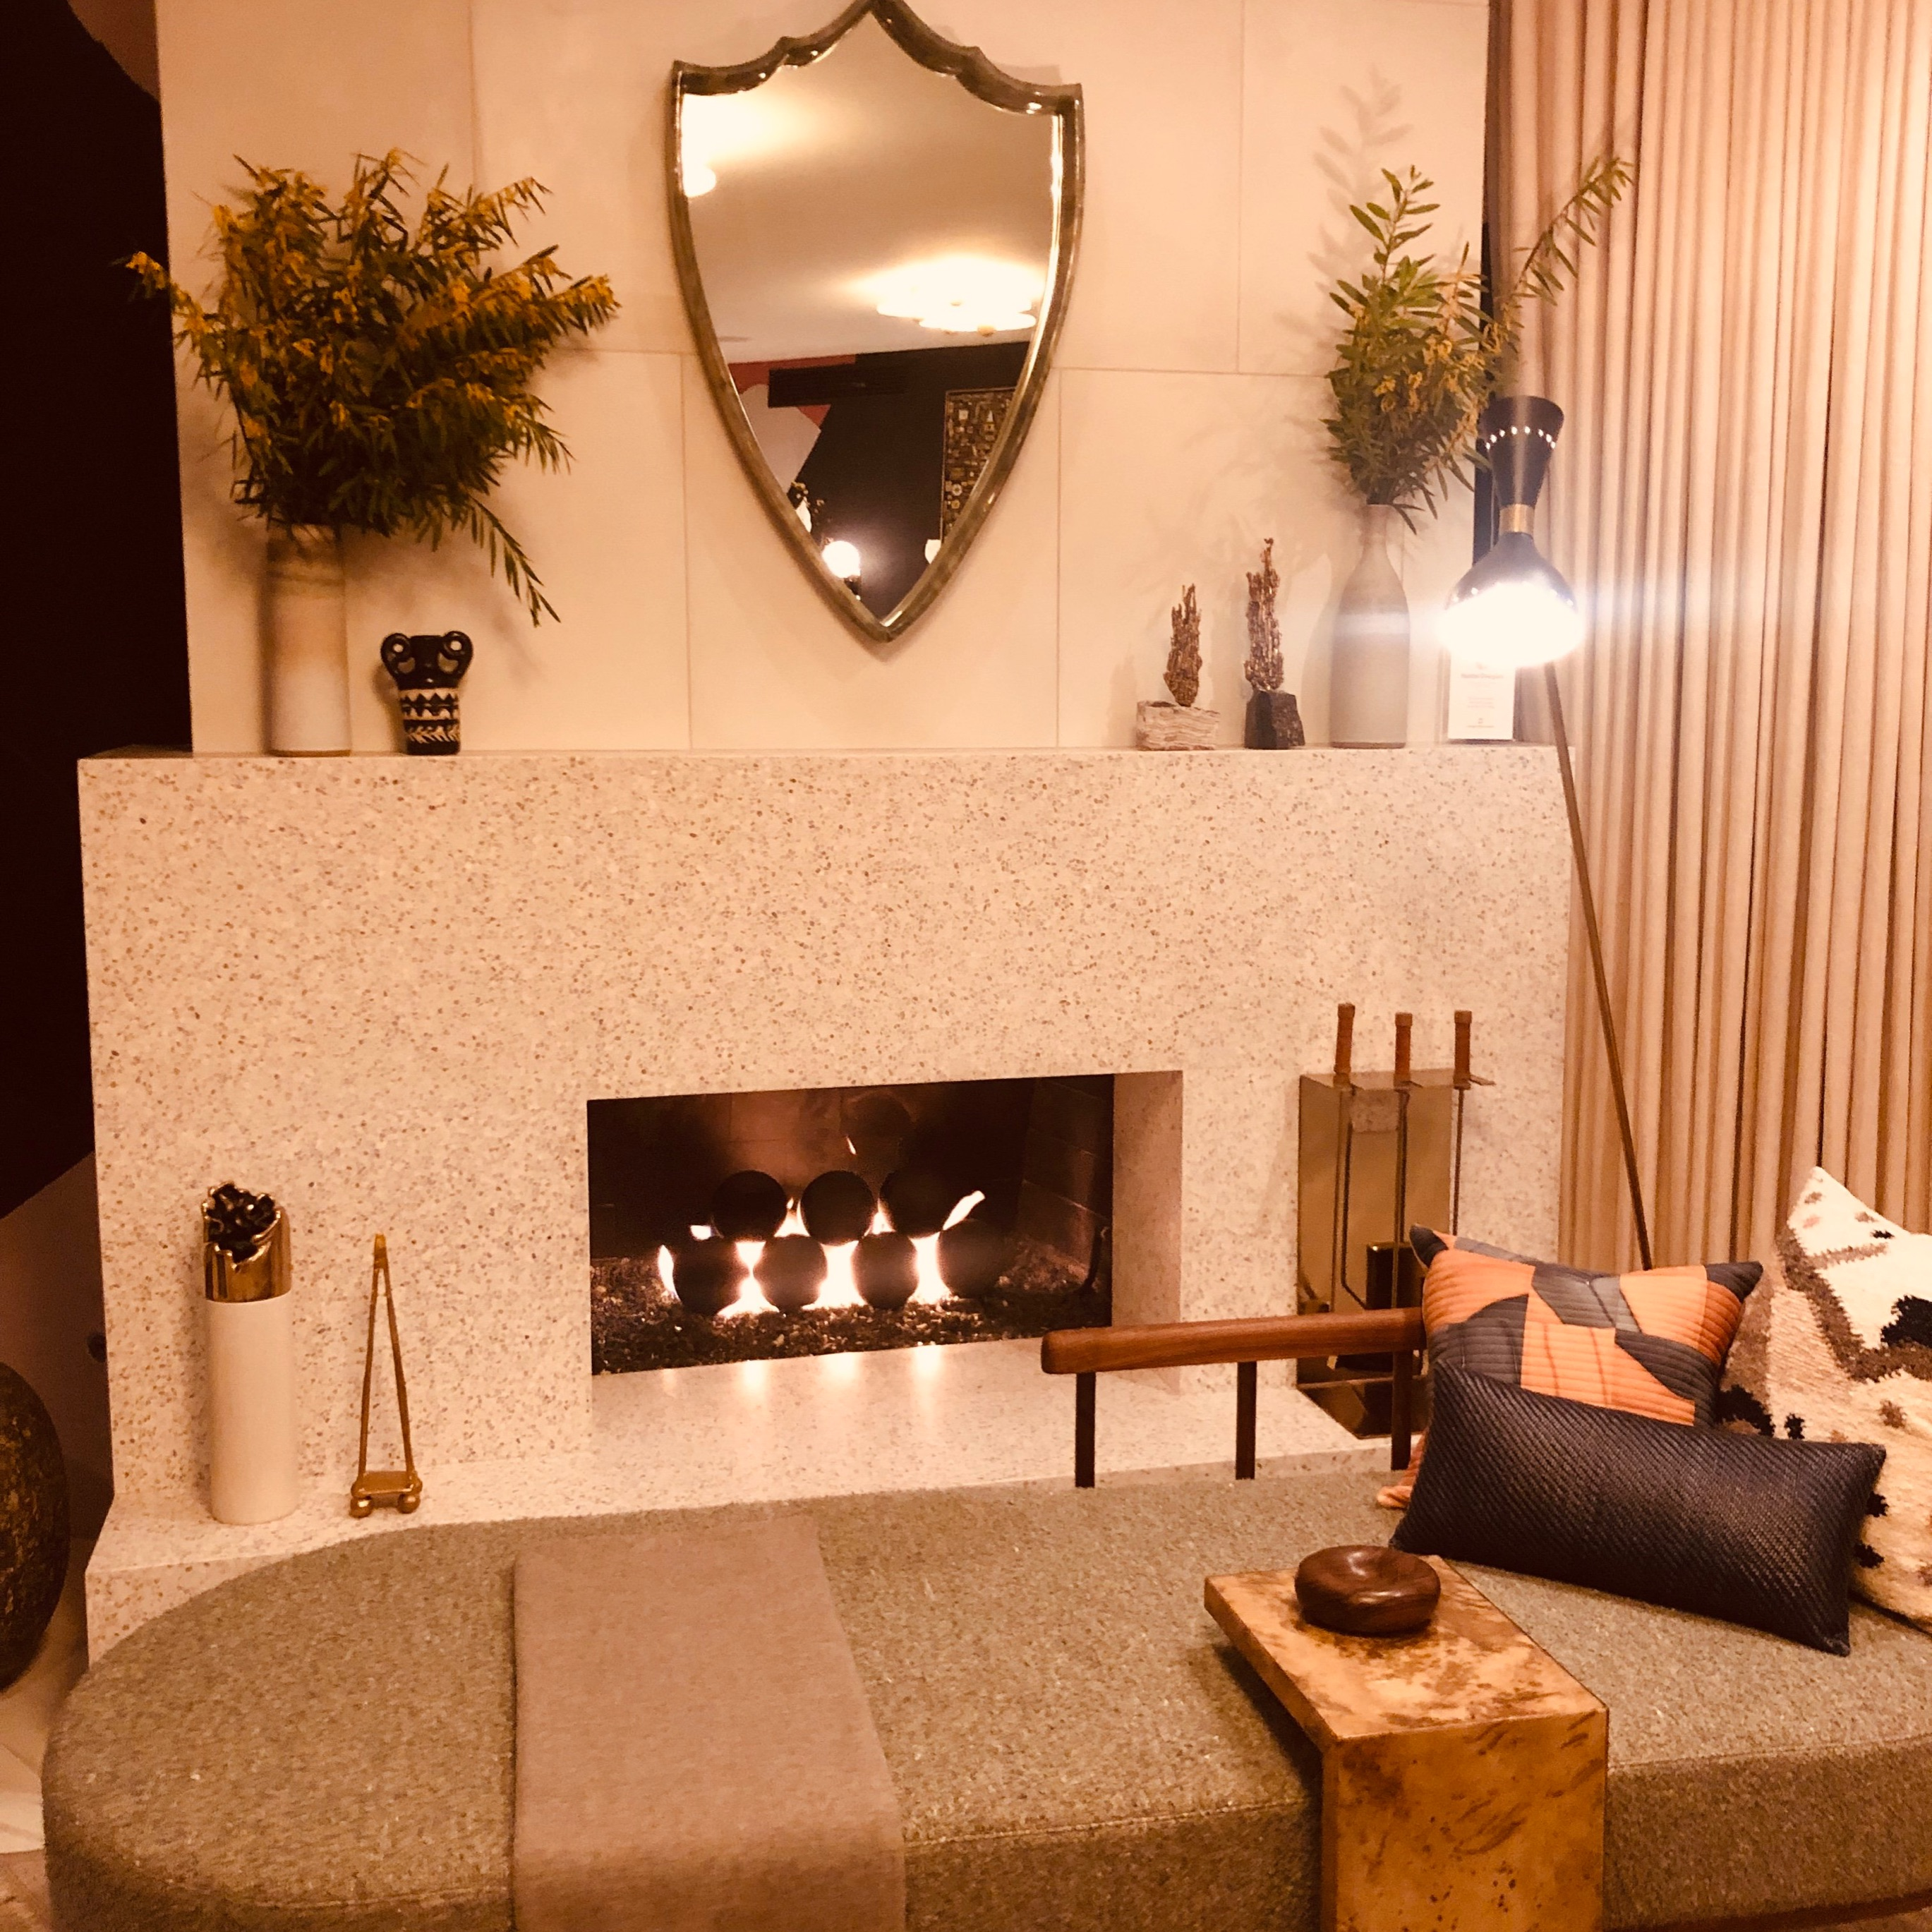 A Luxurious Interior Design Weekend at The Modernist Show Image 005